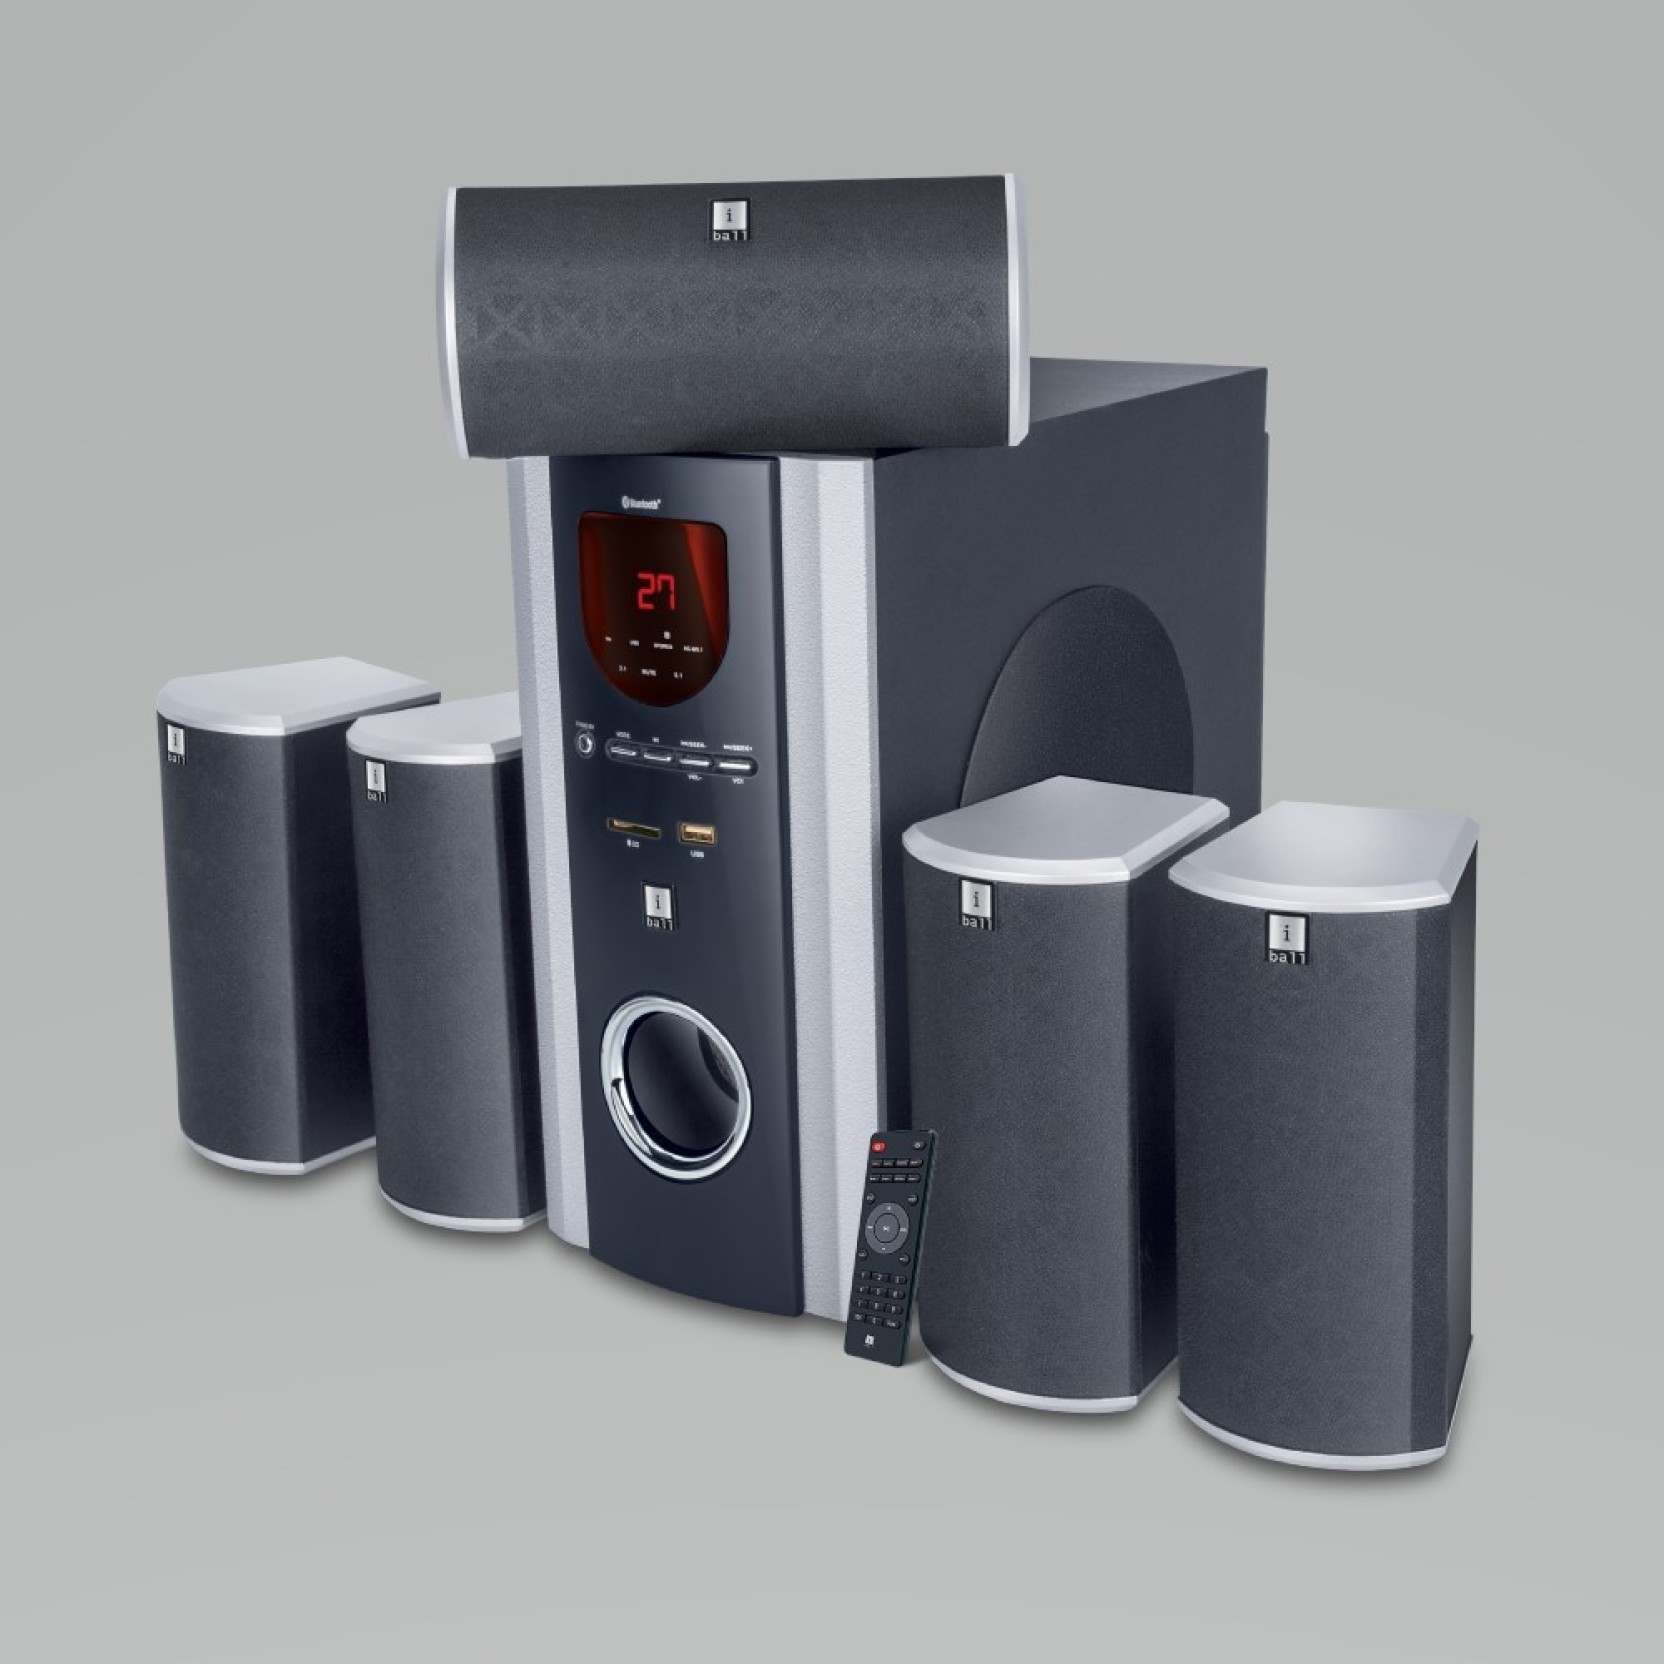 Buy Iball Booster Bth Bluetooth Home Audio Speaker Online From Add To Cart